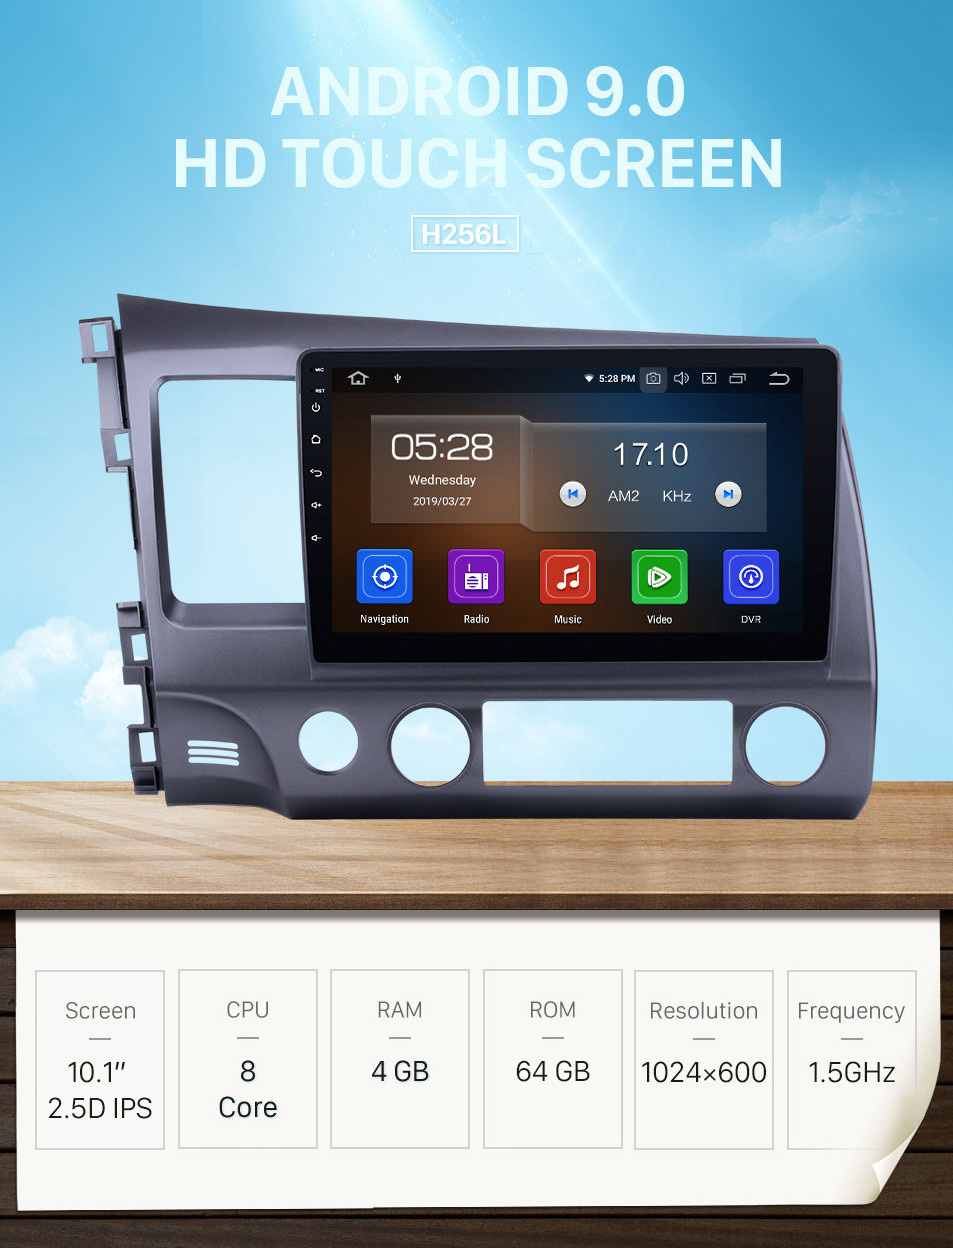 Seicane 10.1 inch HD 1024*600 touchscreen Android 9.0 GPS Navigation For 2006-2011 Honda Civic Bluetooth Car Audio System Support Mirror Link 4G WiFi Backup Camera DVR DAB+ Steering Wheel Control